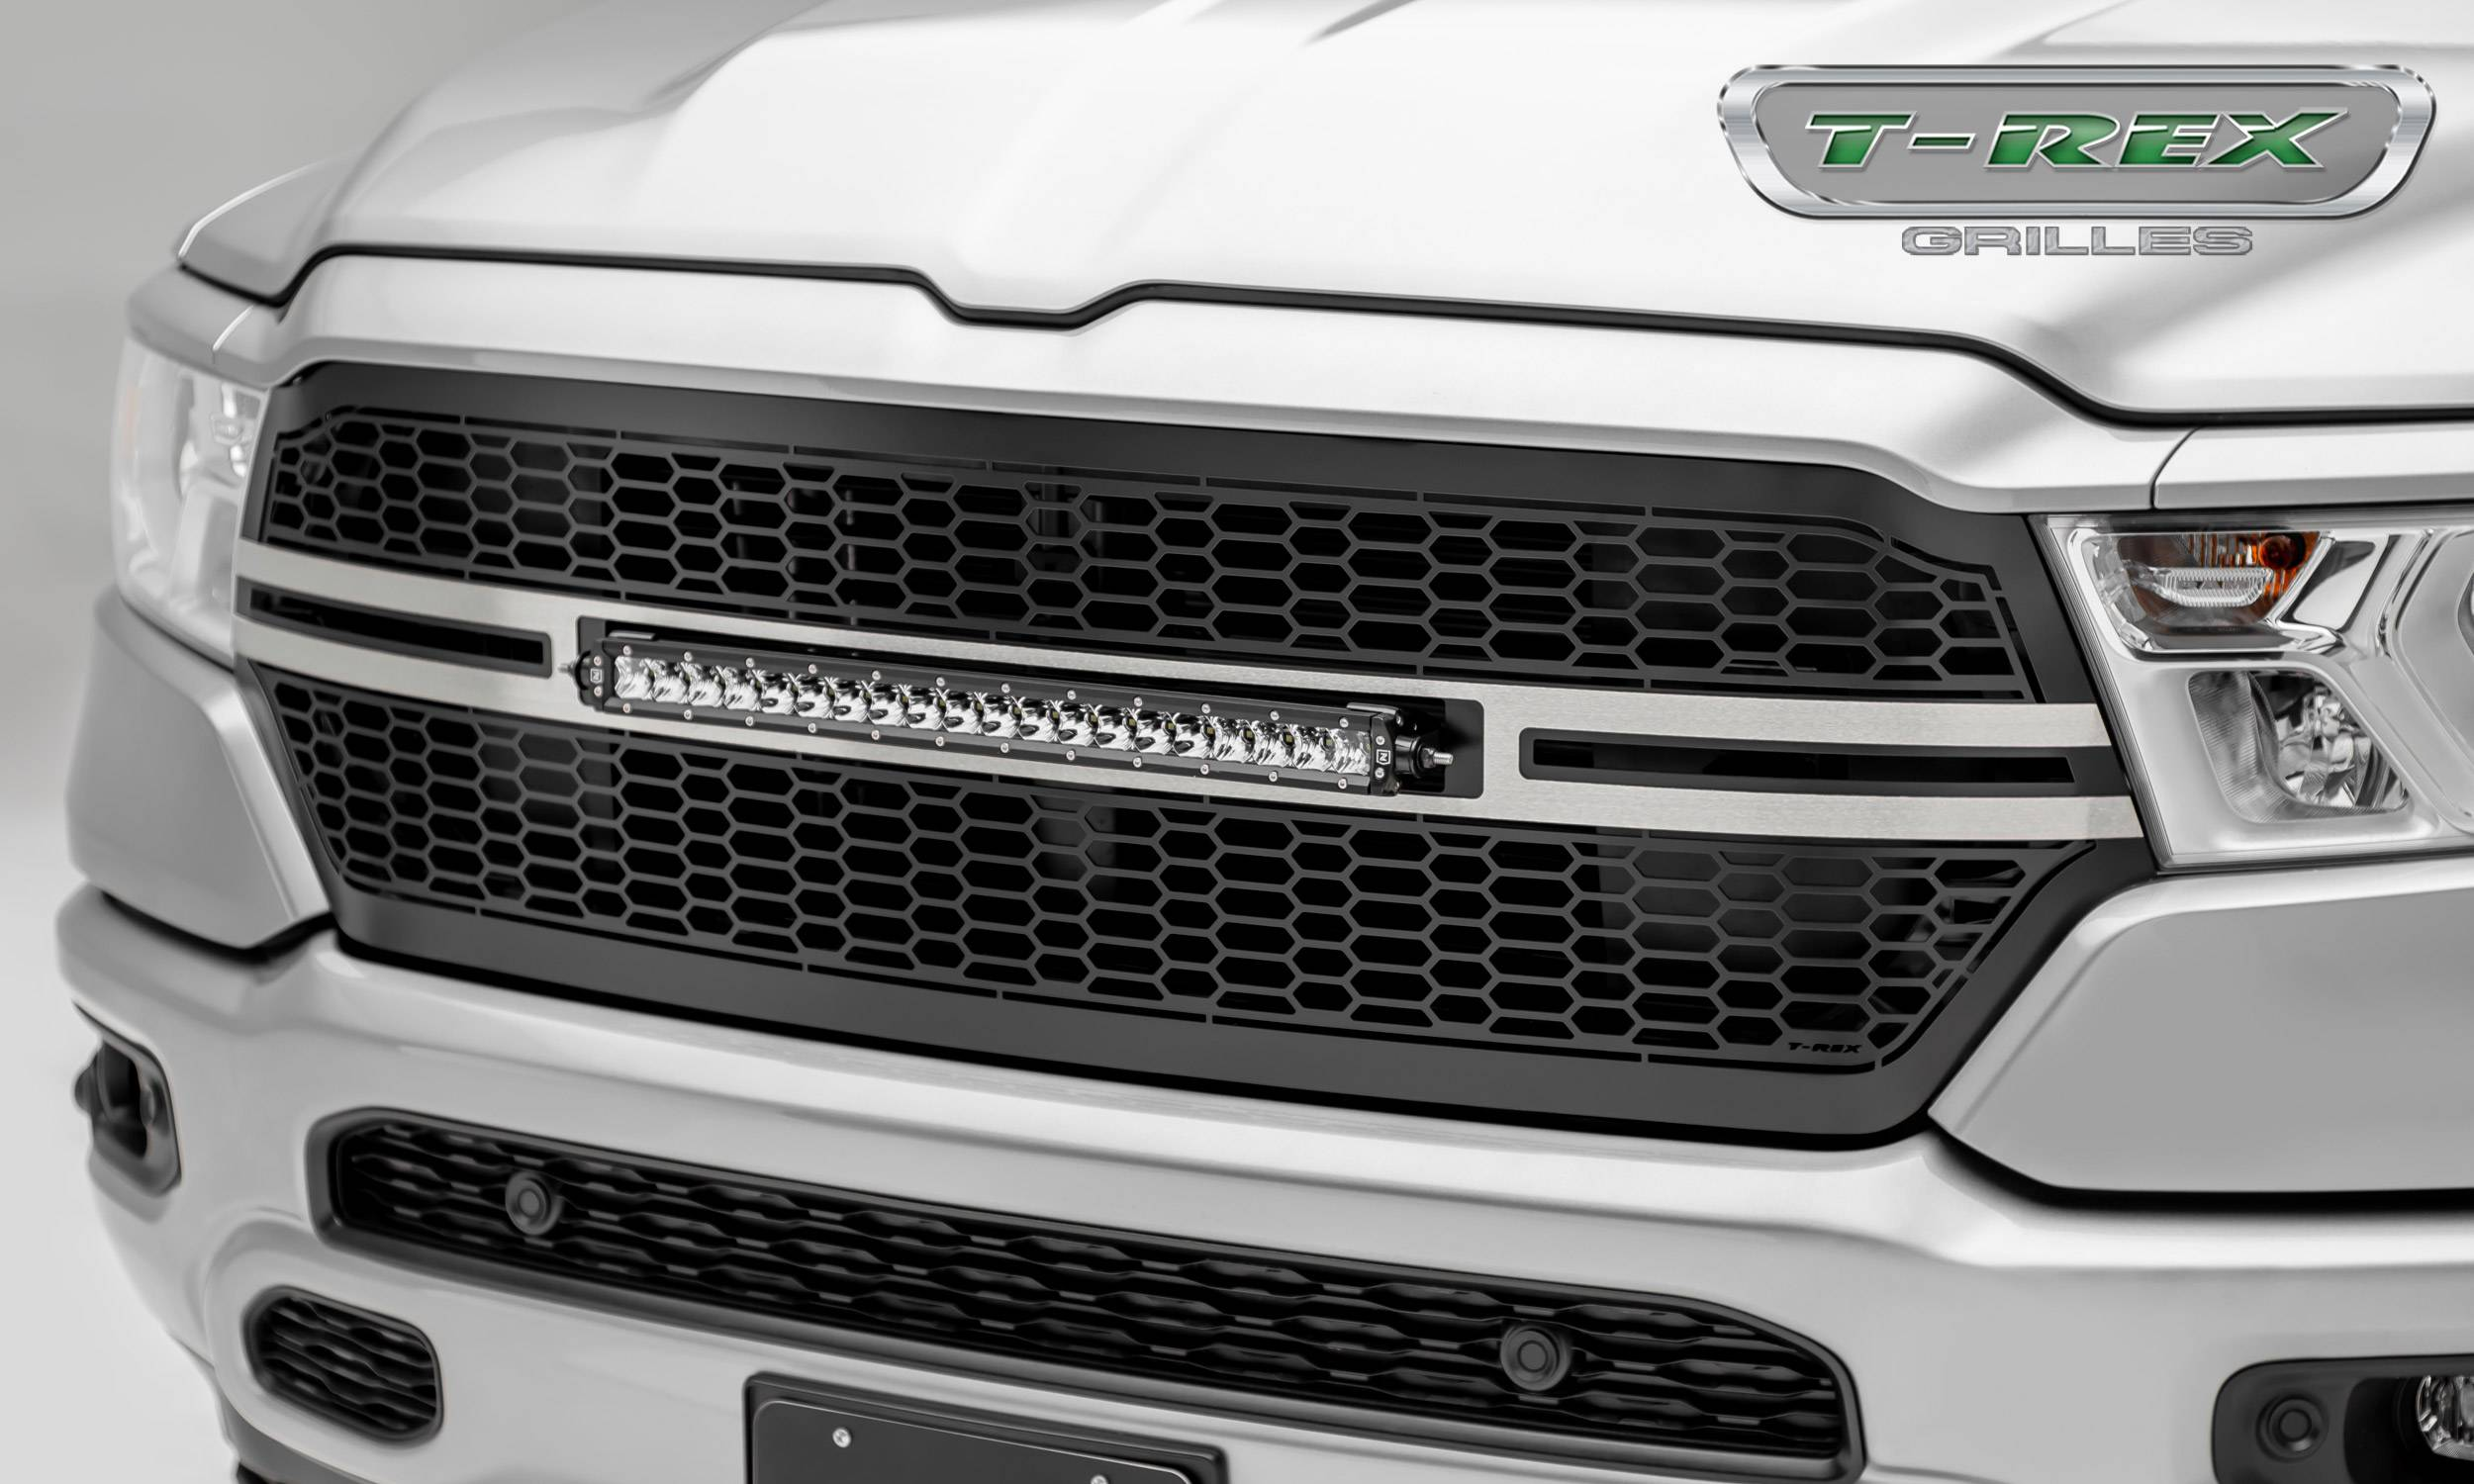 T-REX Grilles - RAM 1500 - Laser Torch Main Grille Replacement w/ (1) 20 inch Single Row LED Light Bar - Laser Cut Repeating Pattern Trim - Pt # 7314651-T